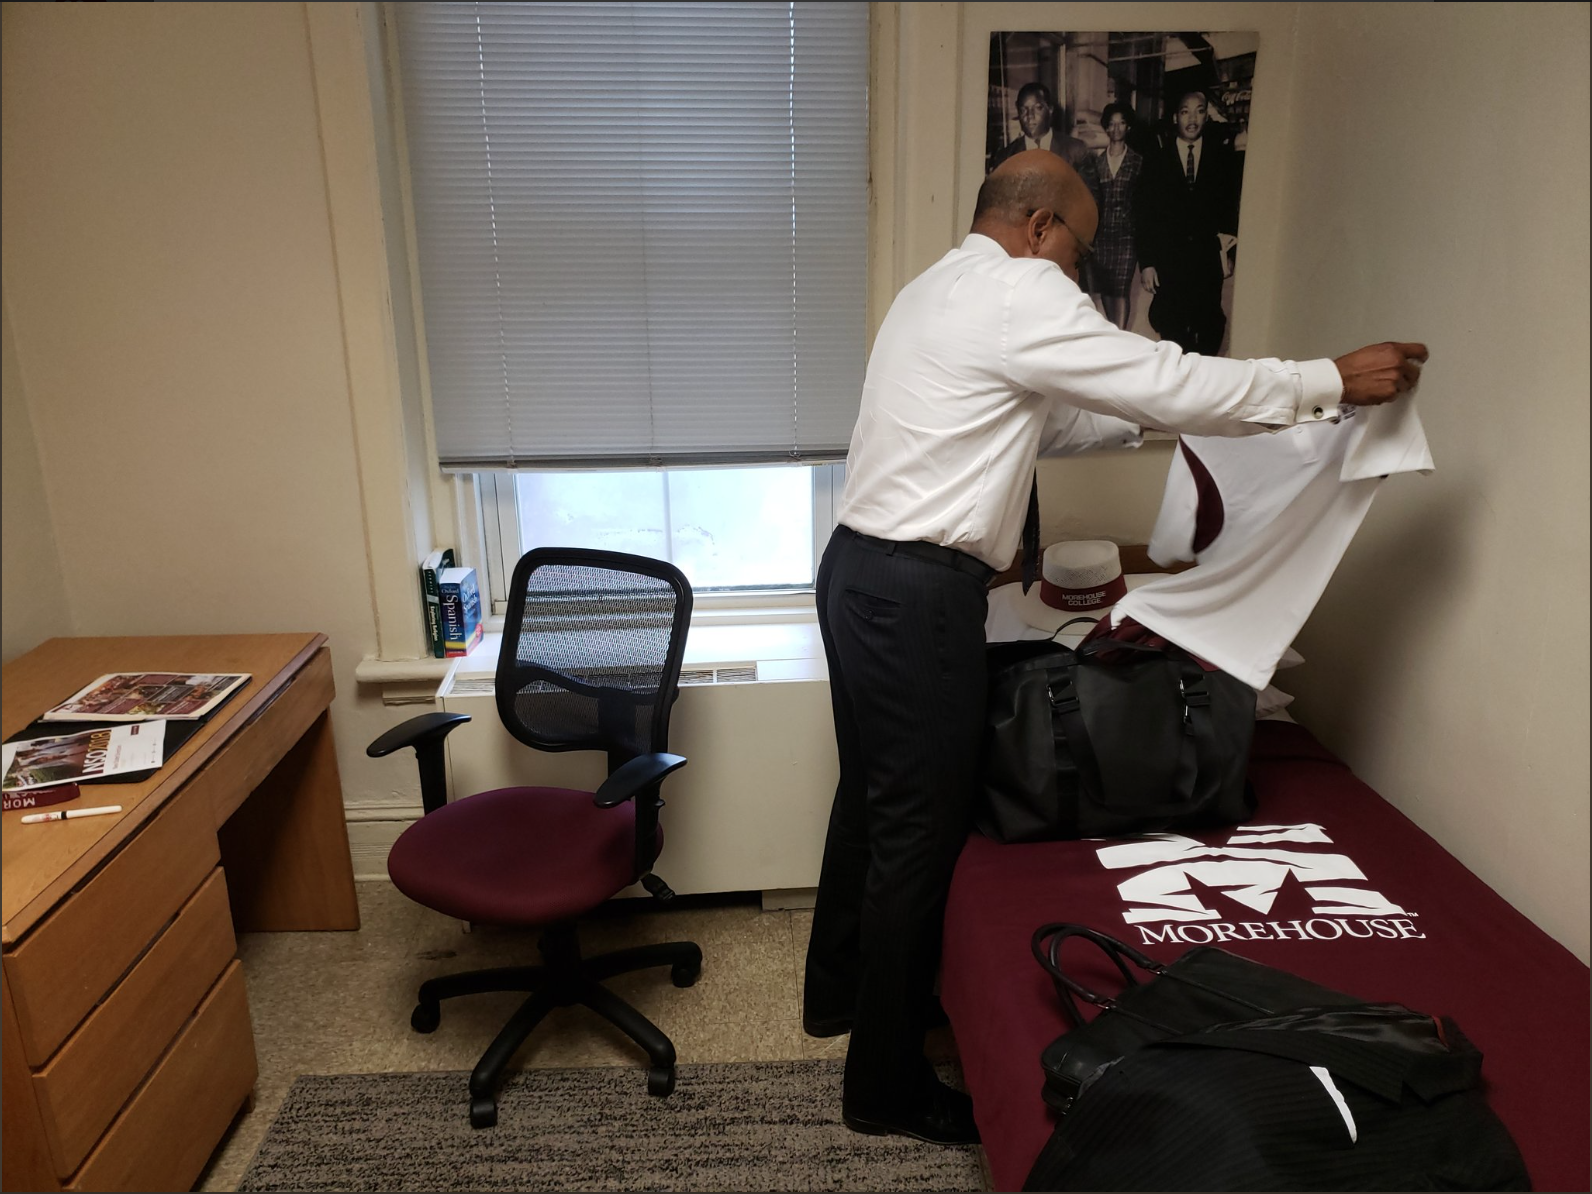 New Morehouse President Moves Into The Colleges Dorms For His